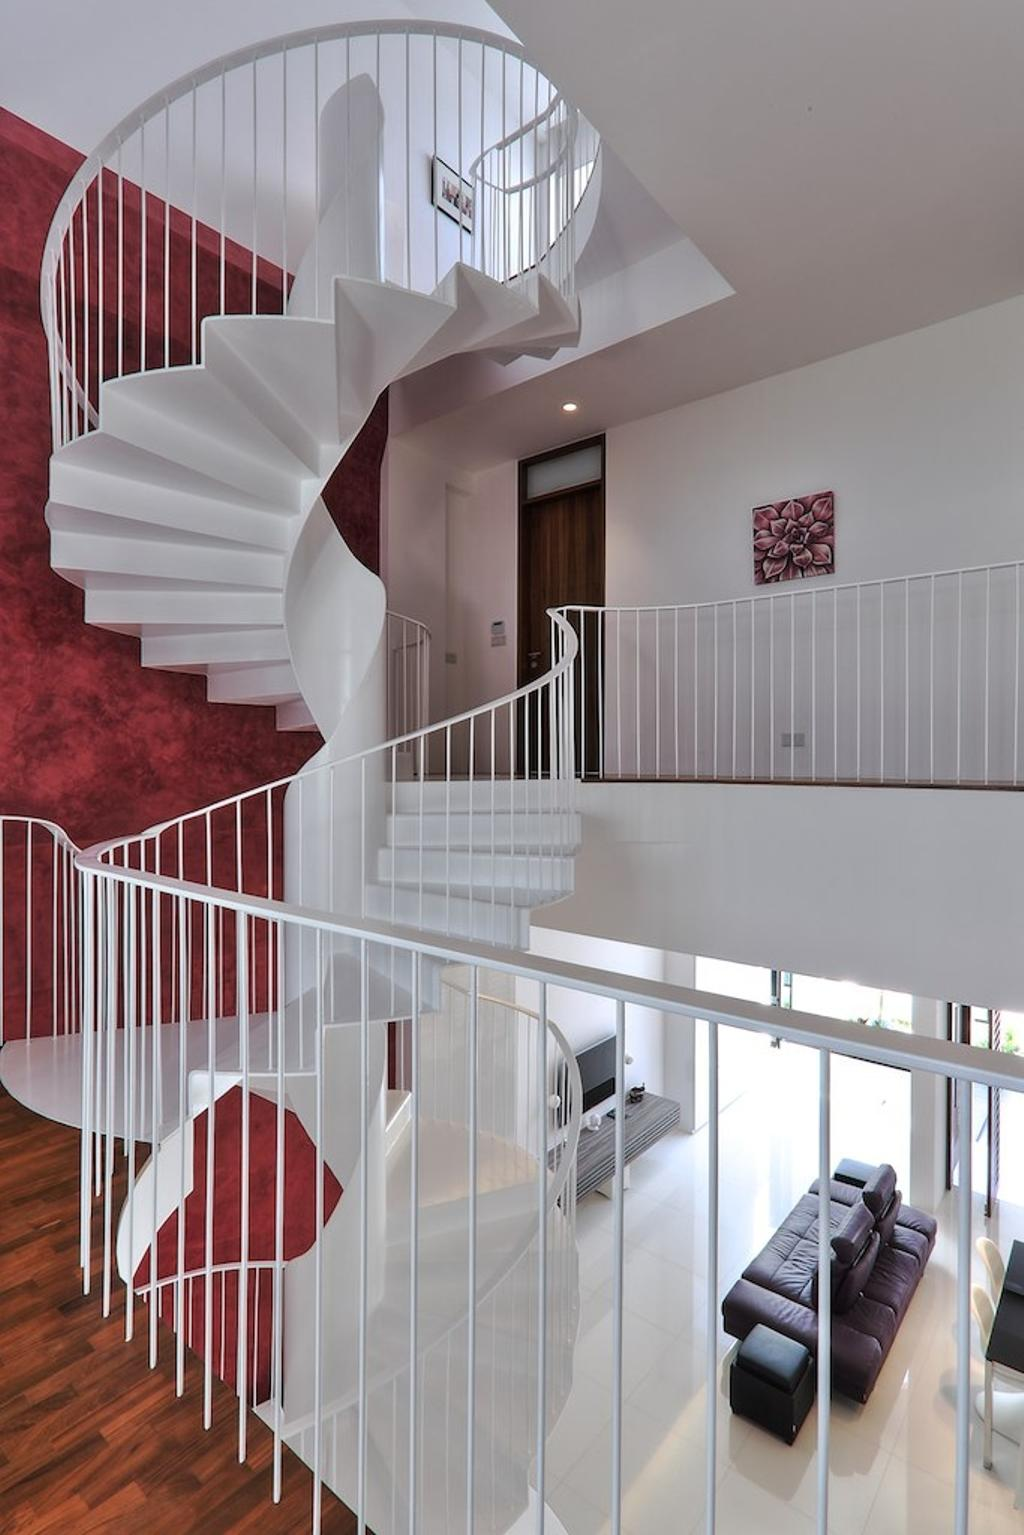 Modern, Landed, Siglap Rise, Architect, EZRA Architects, Wooden Flooring, Parquet, Spiral Staircase, Spiral Stairs, Winded Stairs, Wallart, Wall Art, White Wall, Grill, Textured Wall, Purple Wall, Banister, Handrail, Staircase